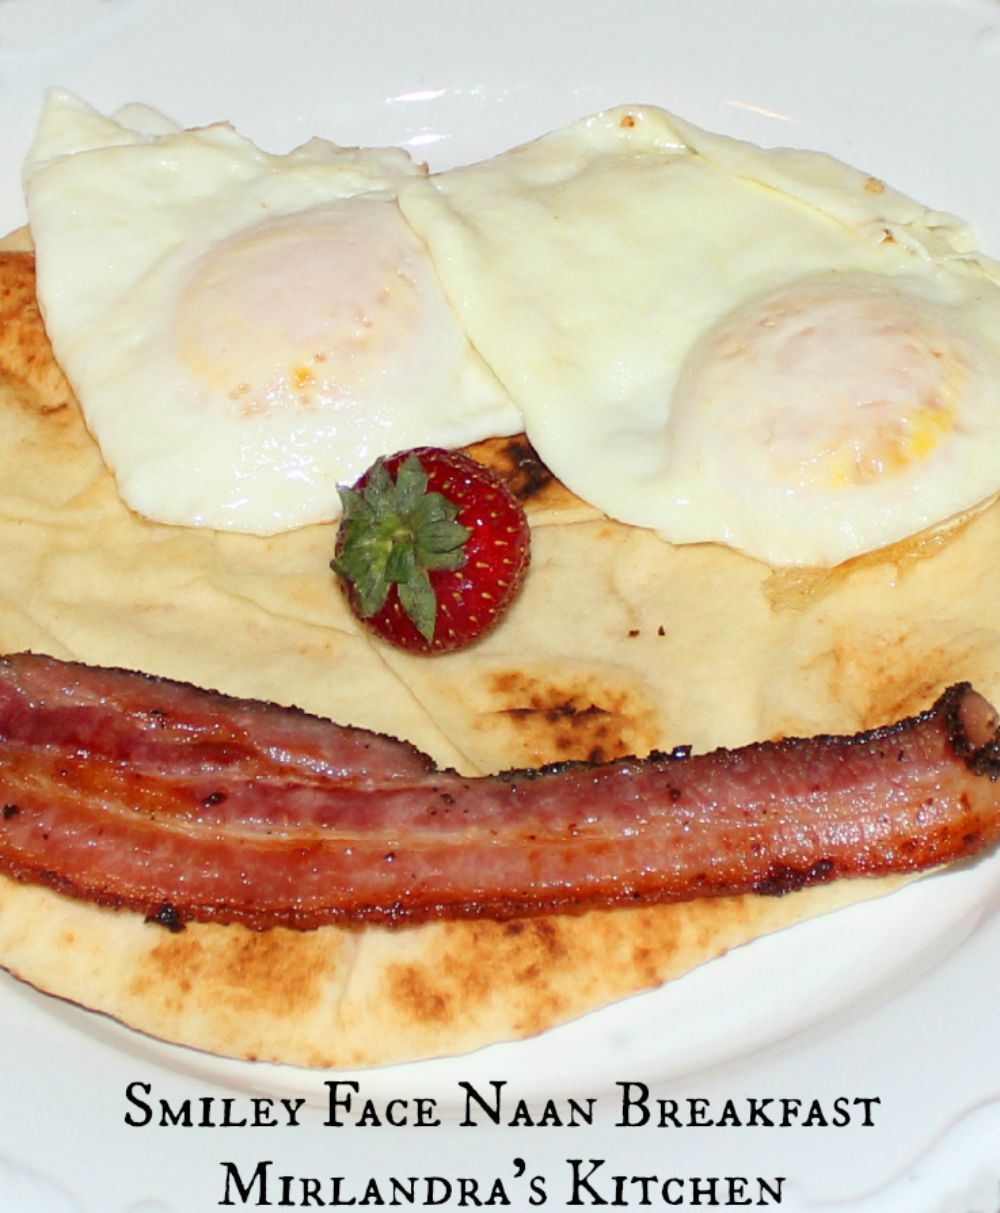 This cute breakfast with naan bread is yummy, simple and great for birthdays and breakfast in bed. Sometimes it is fun to do something a bit more playful!